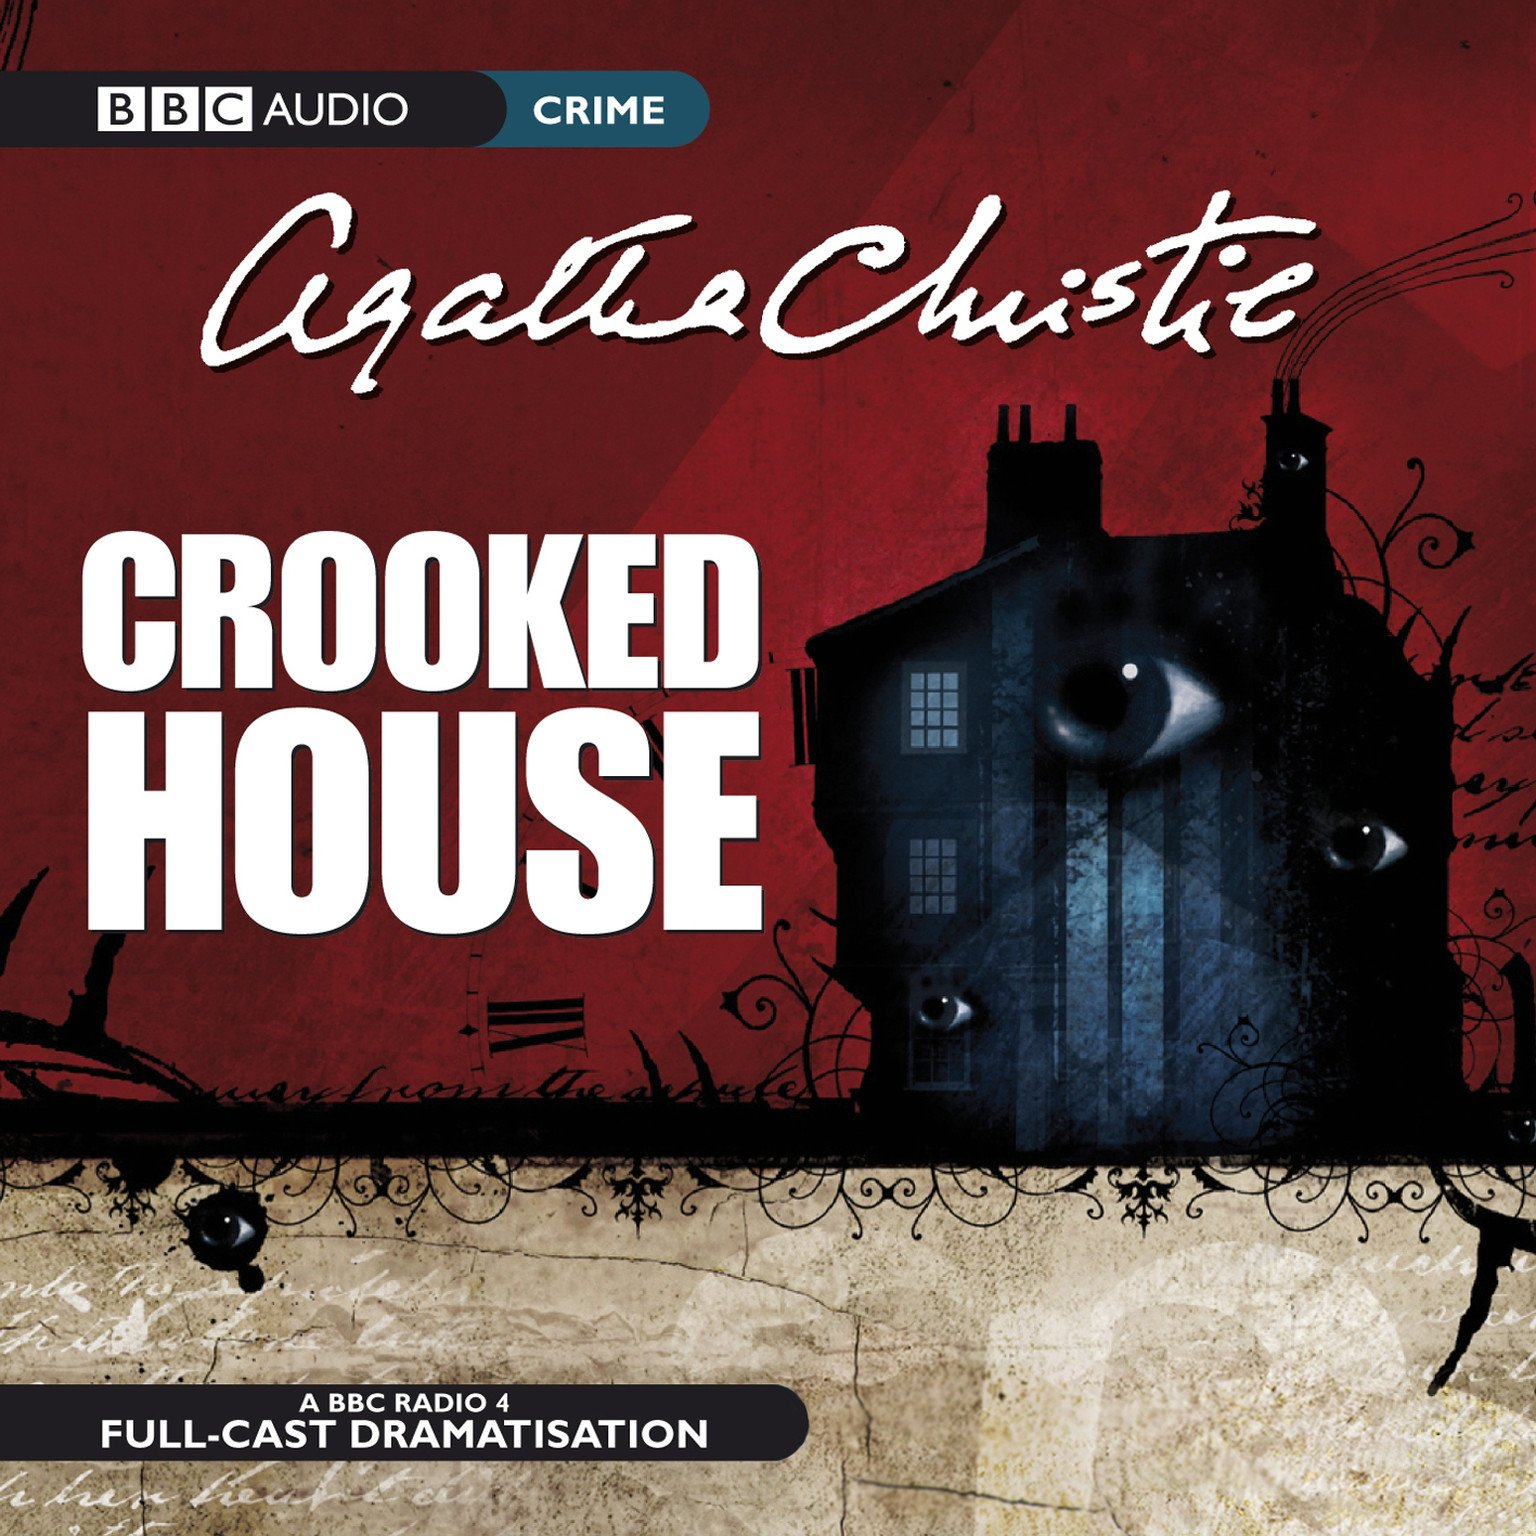 crooked house dramatised